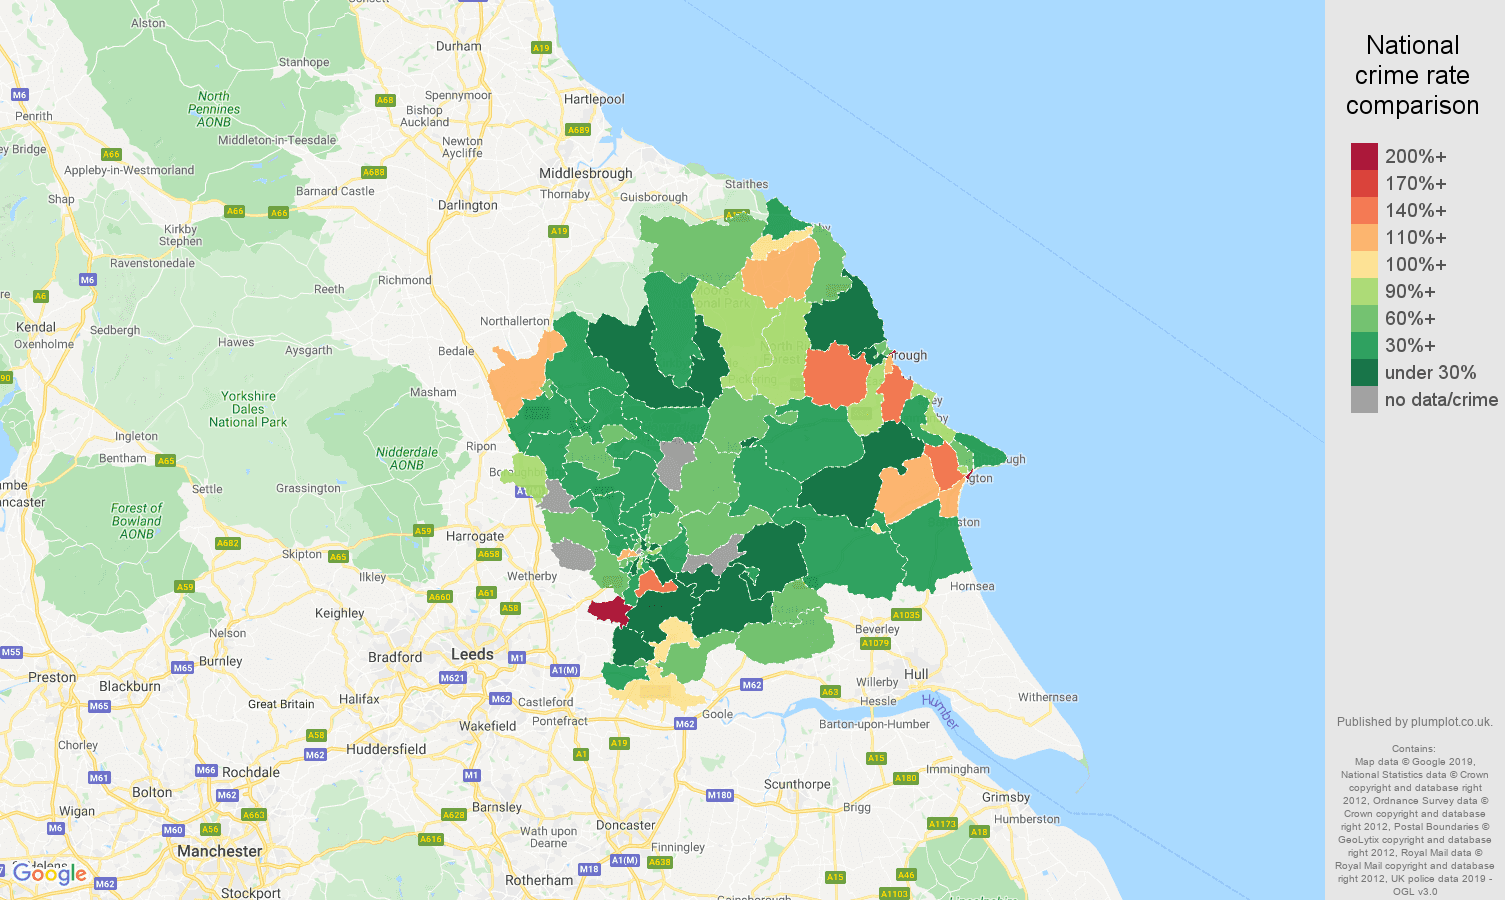 York other crime rate comparison map